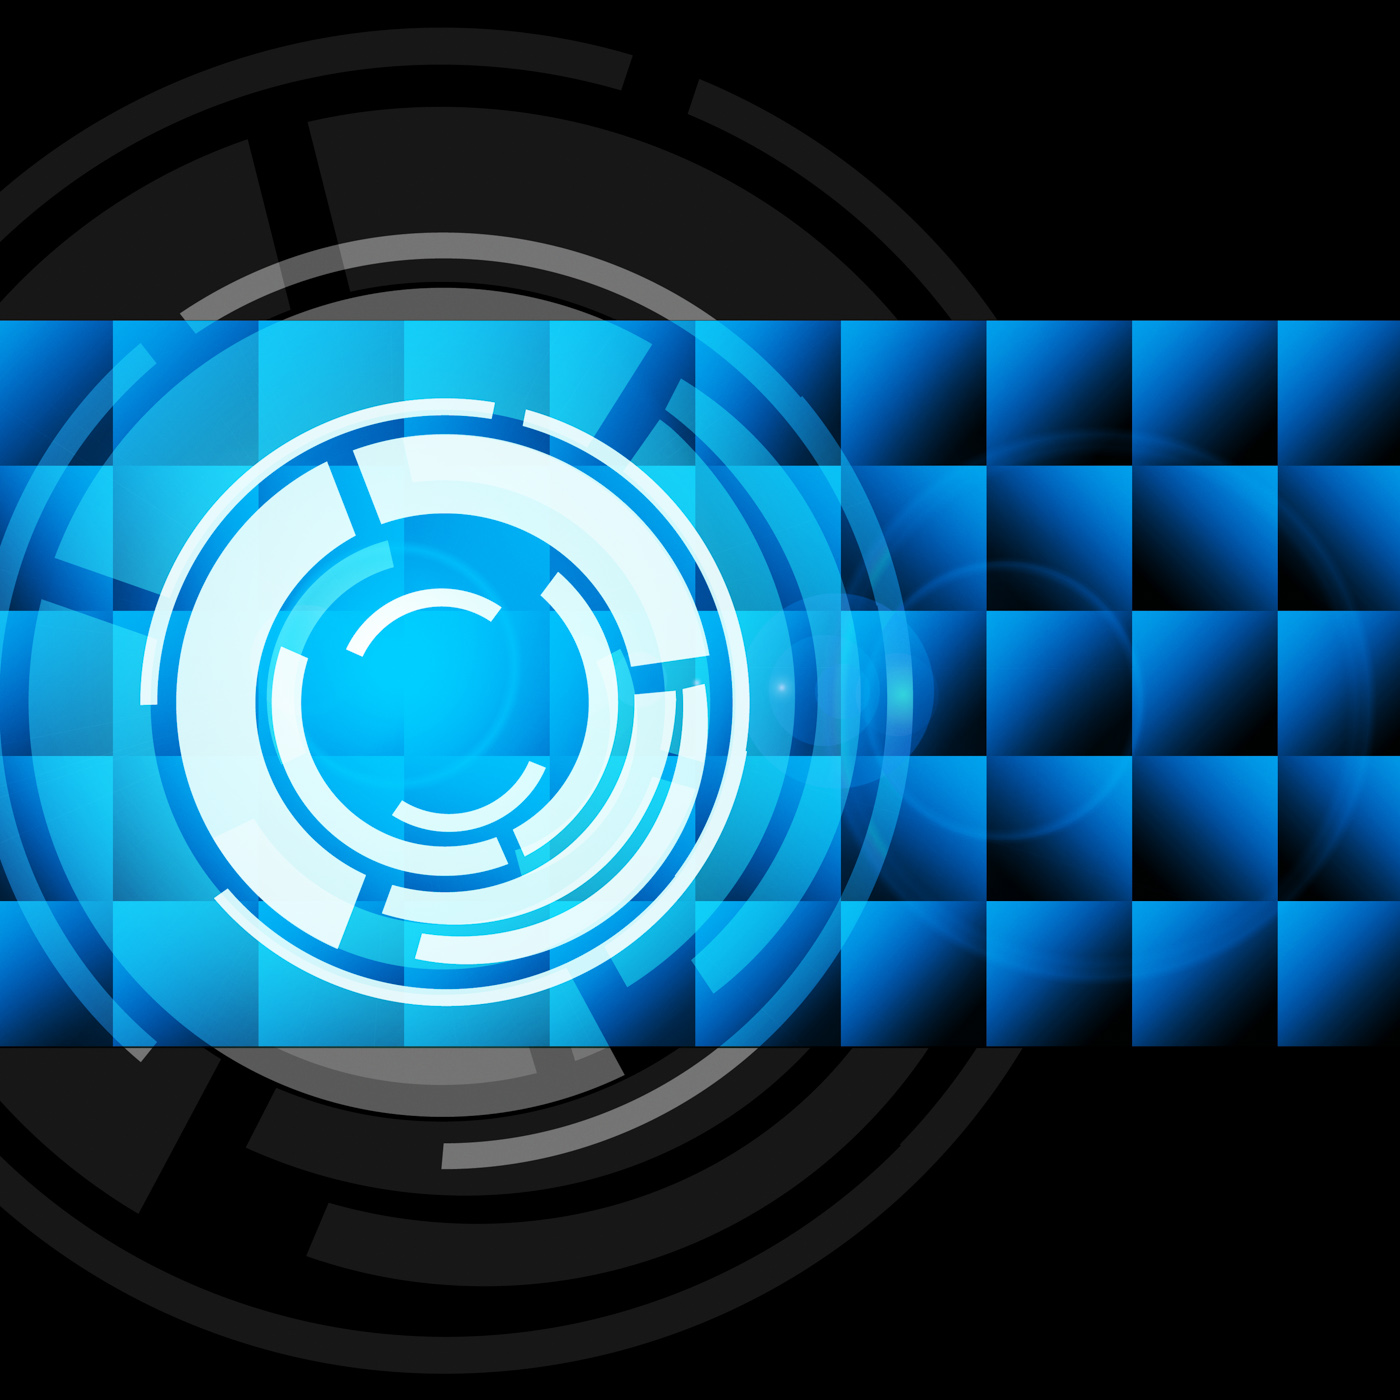 Blue circles background shows records and gramophone photo